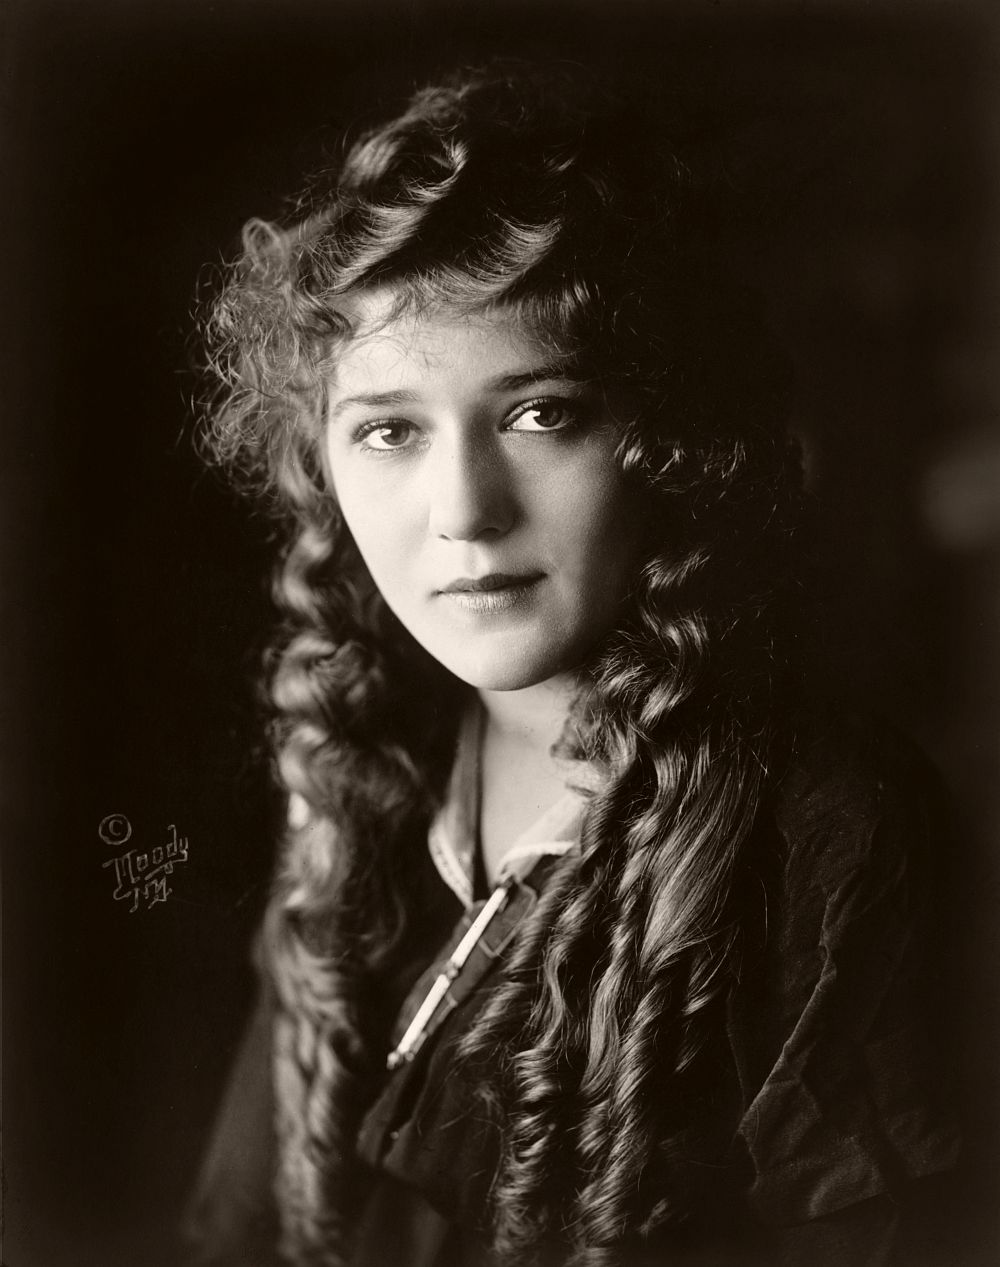 Mary Pickford - Silent Movie Star